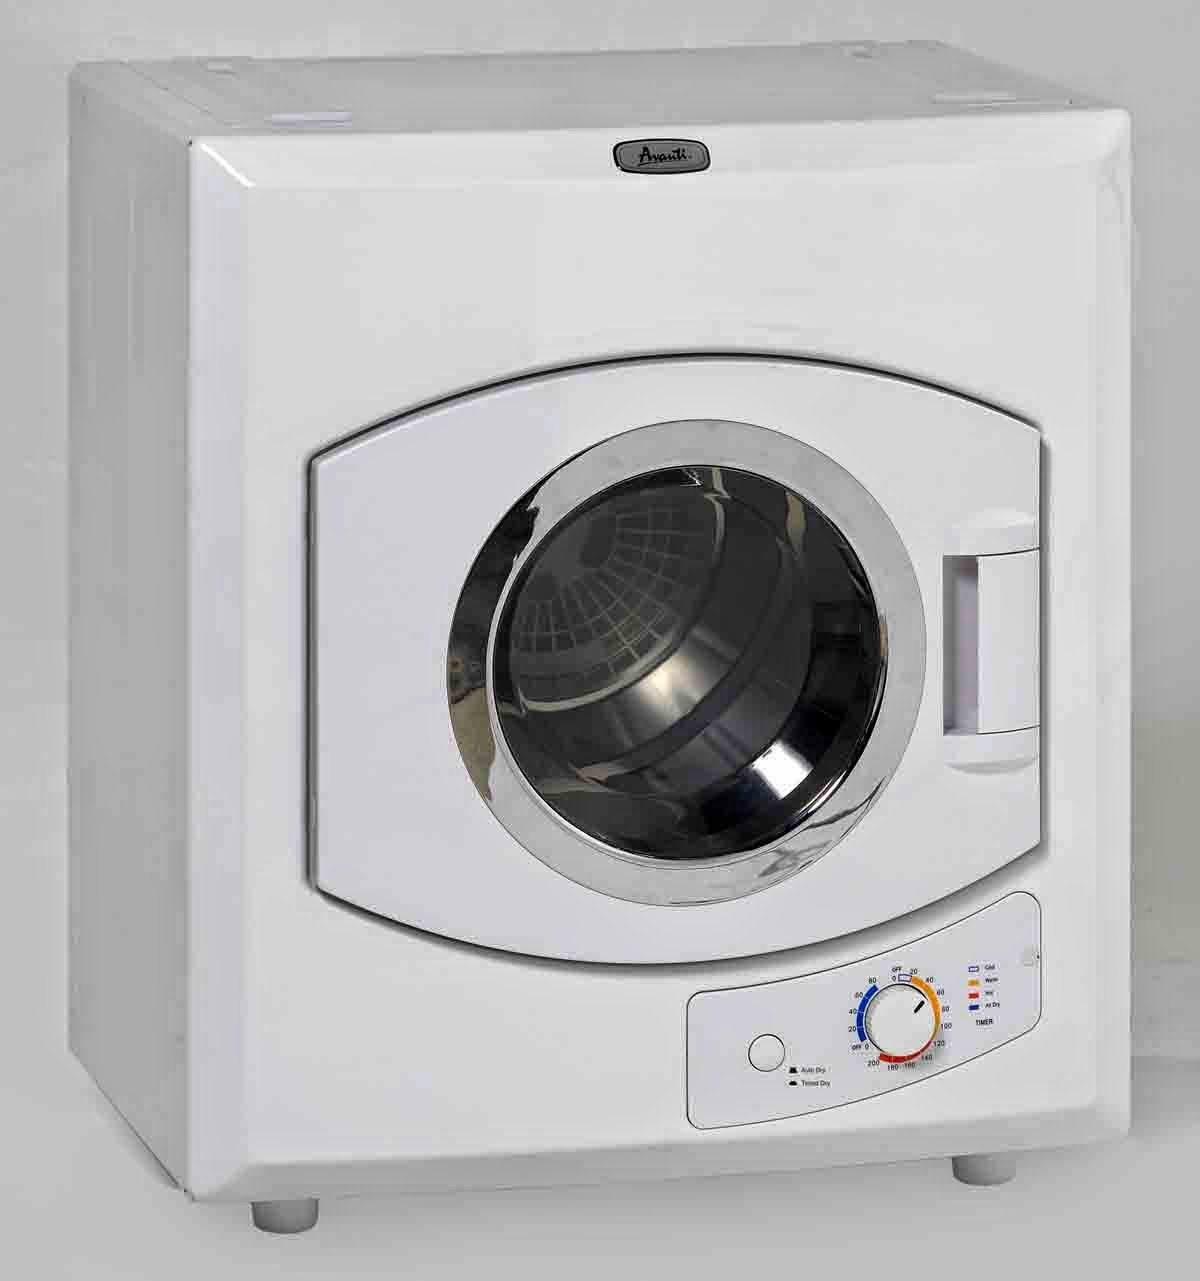 stackable washer dryer: apartment stackable washer dryer